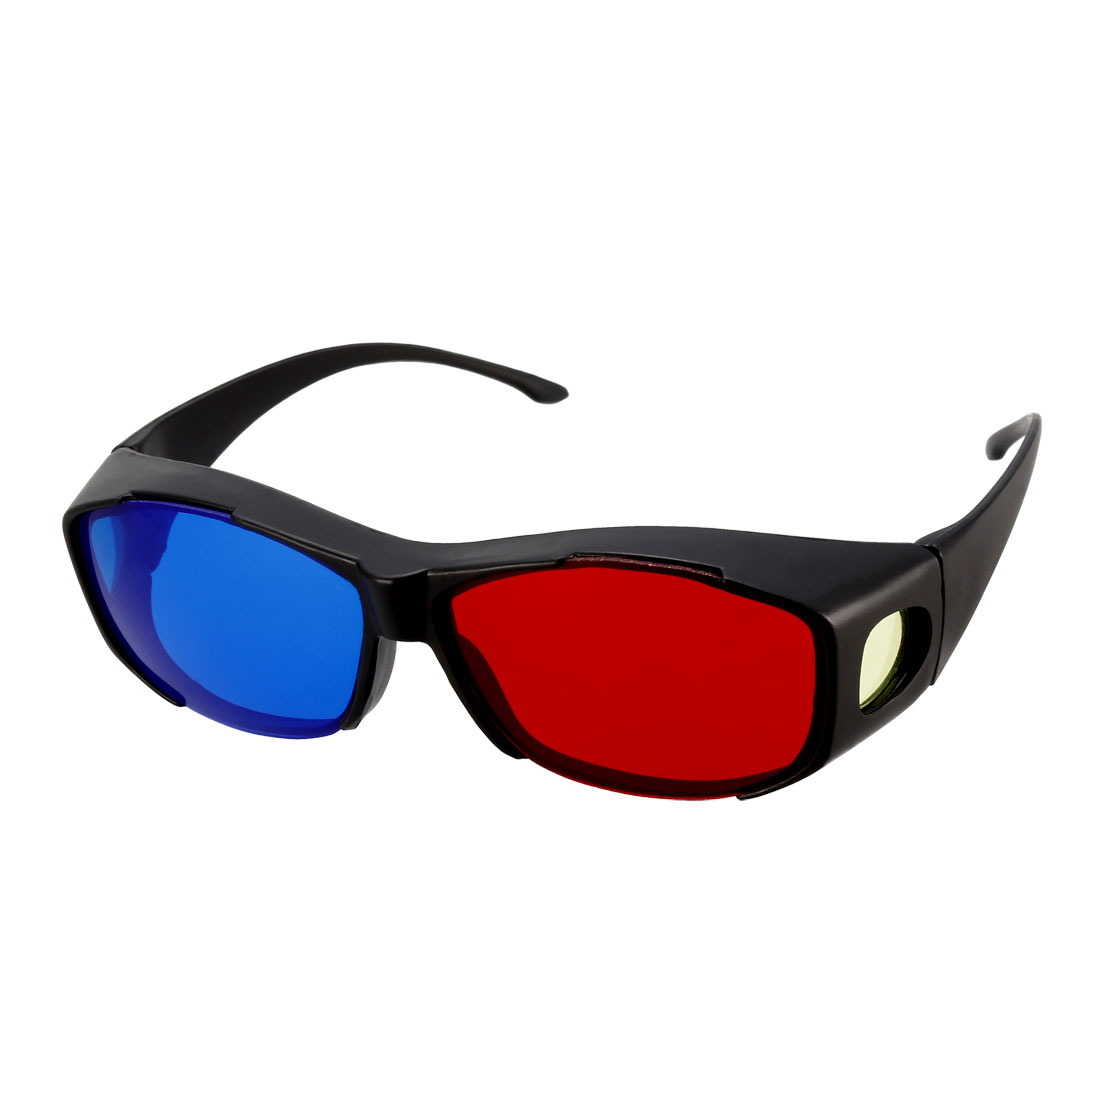 Red-Blue 3D Glasses 3D Visoin Glass for Red - Blue Format Movie/Picture